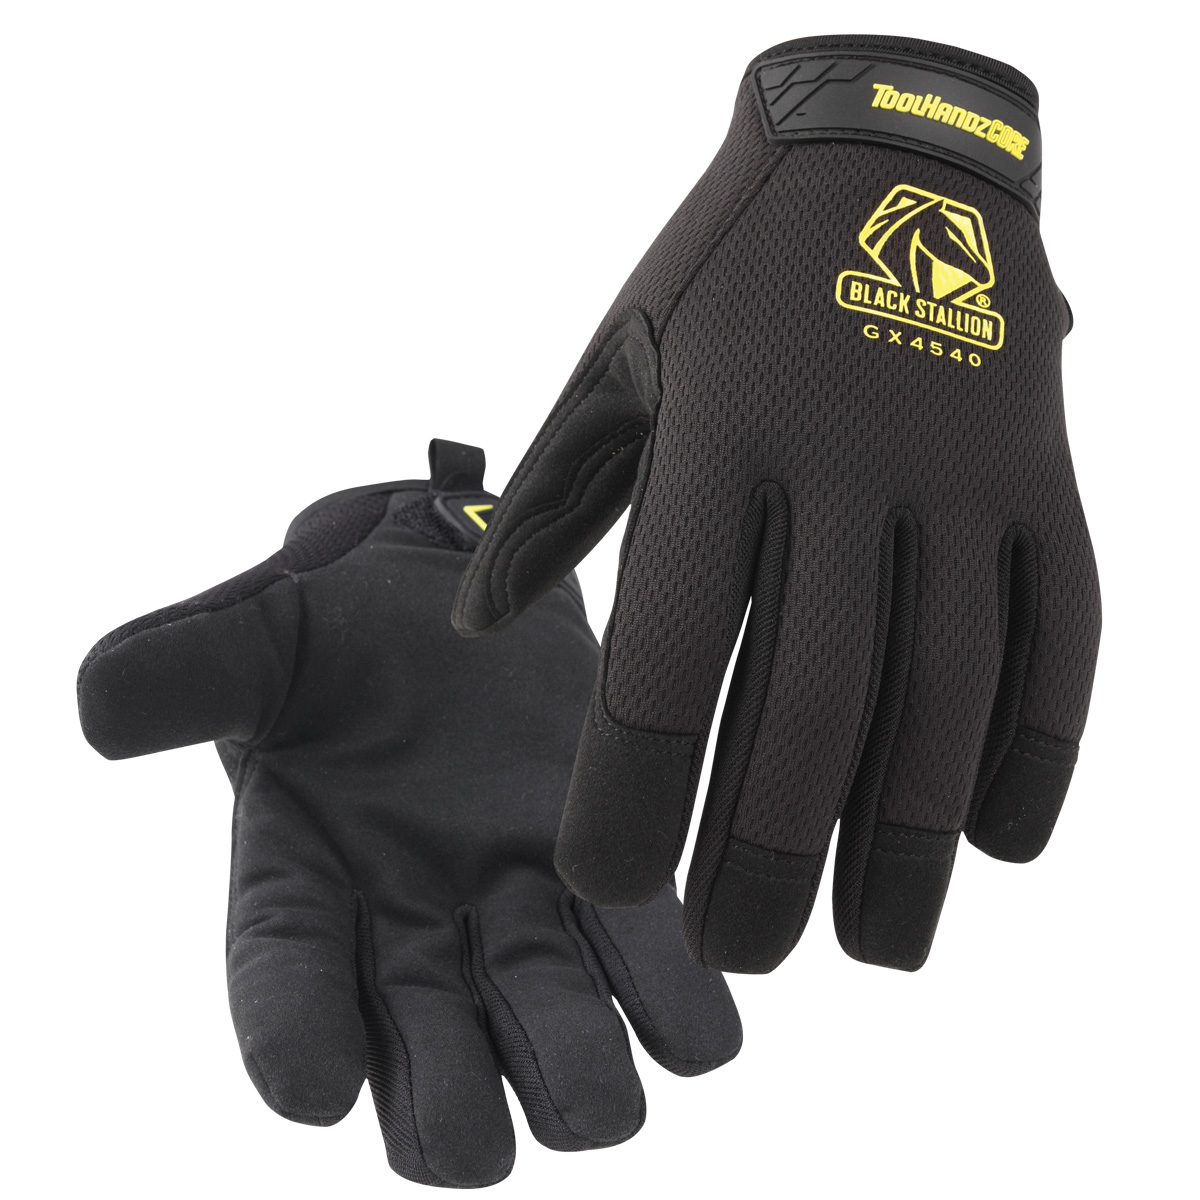 ToolHandz CORE SLP Multiuse Mech. Glove #GX4540-BK